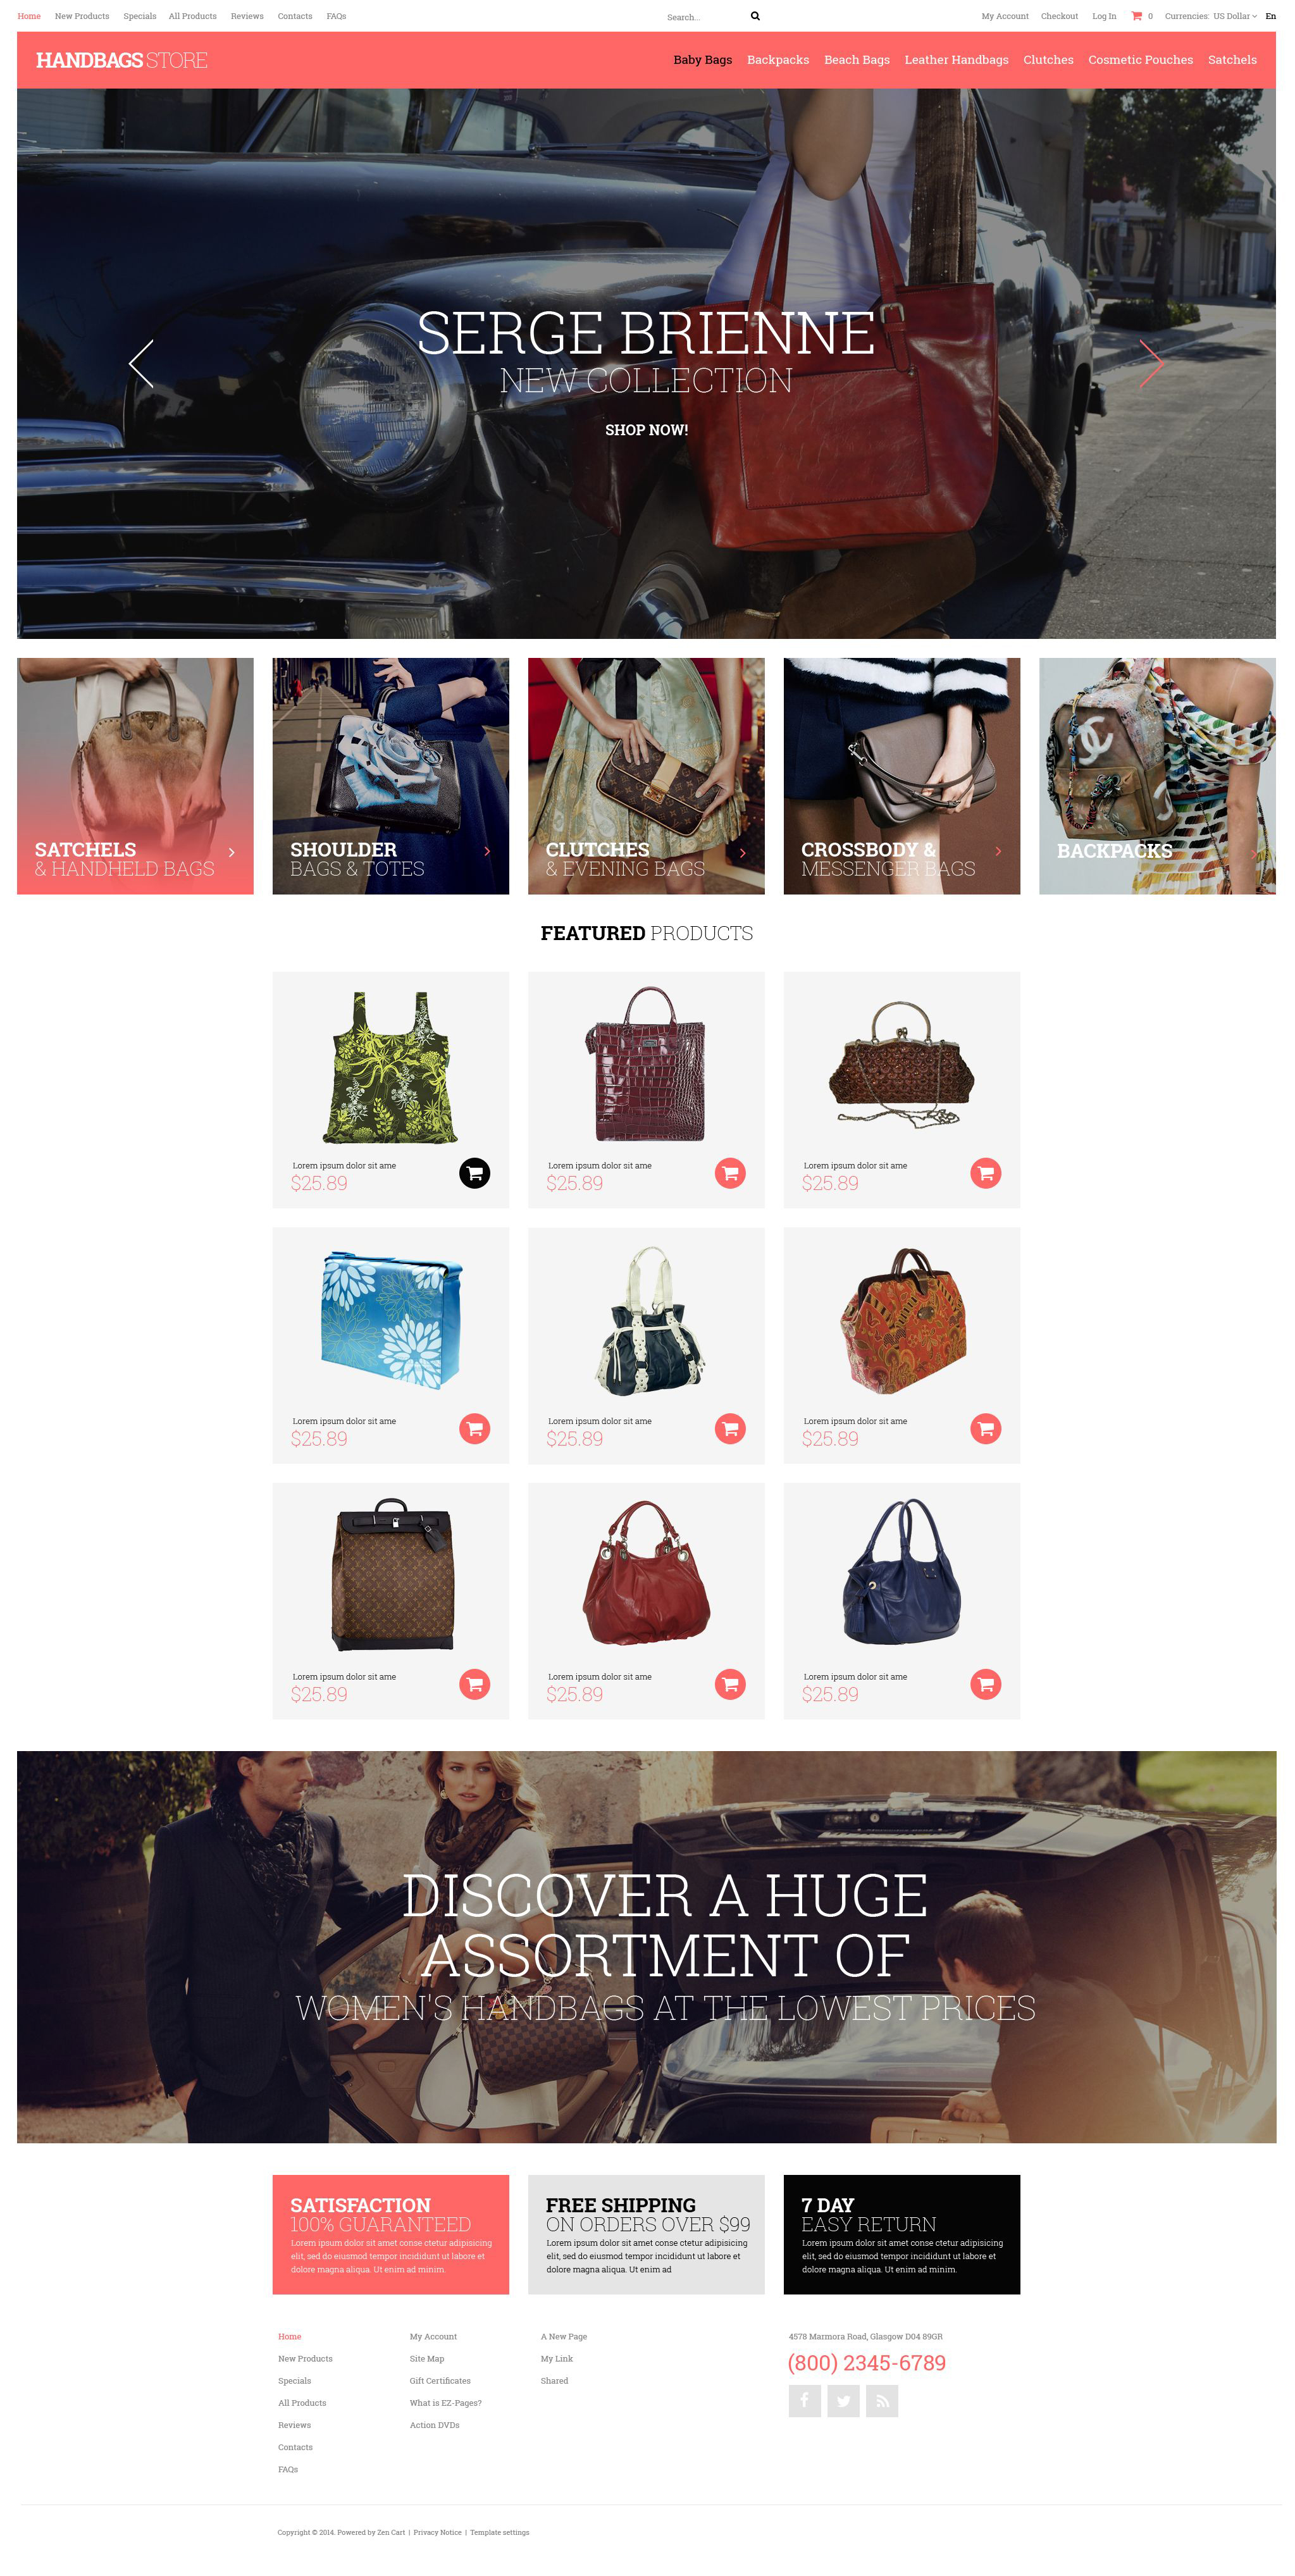 Handbag Boutique №52035 - скриншот